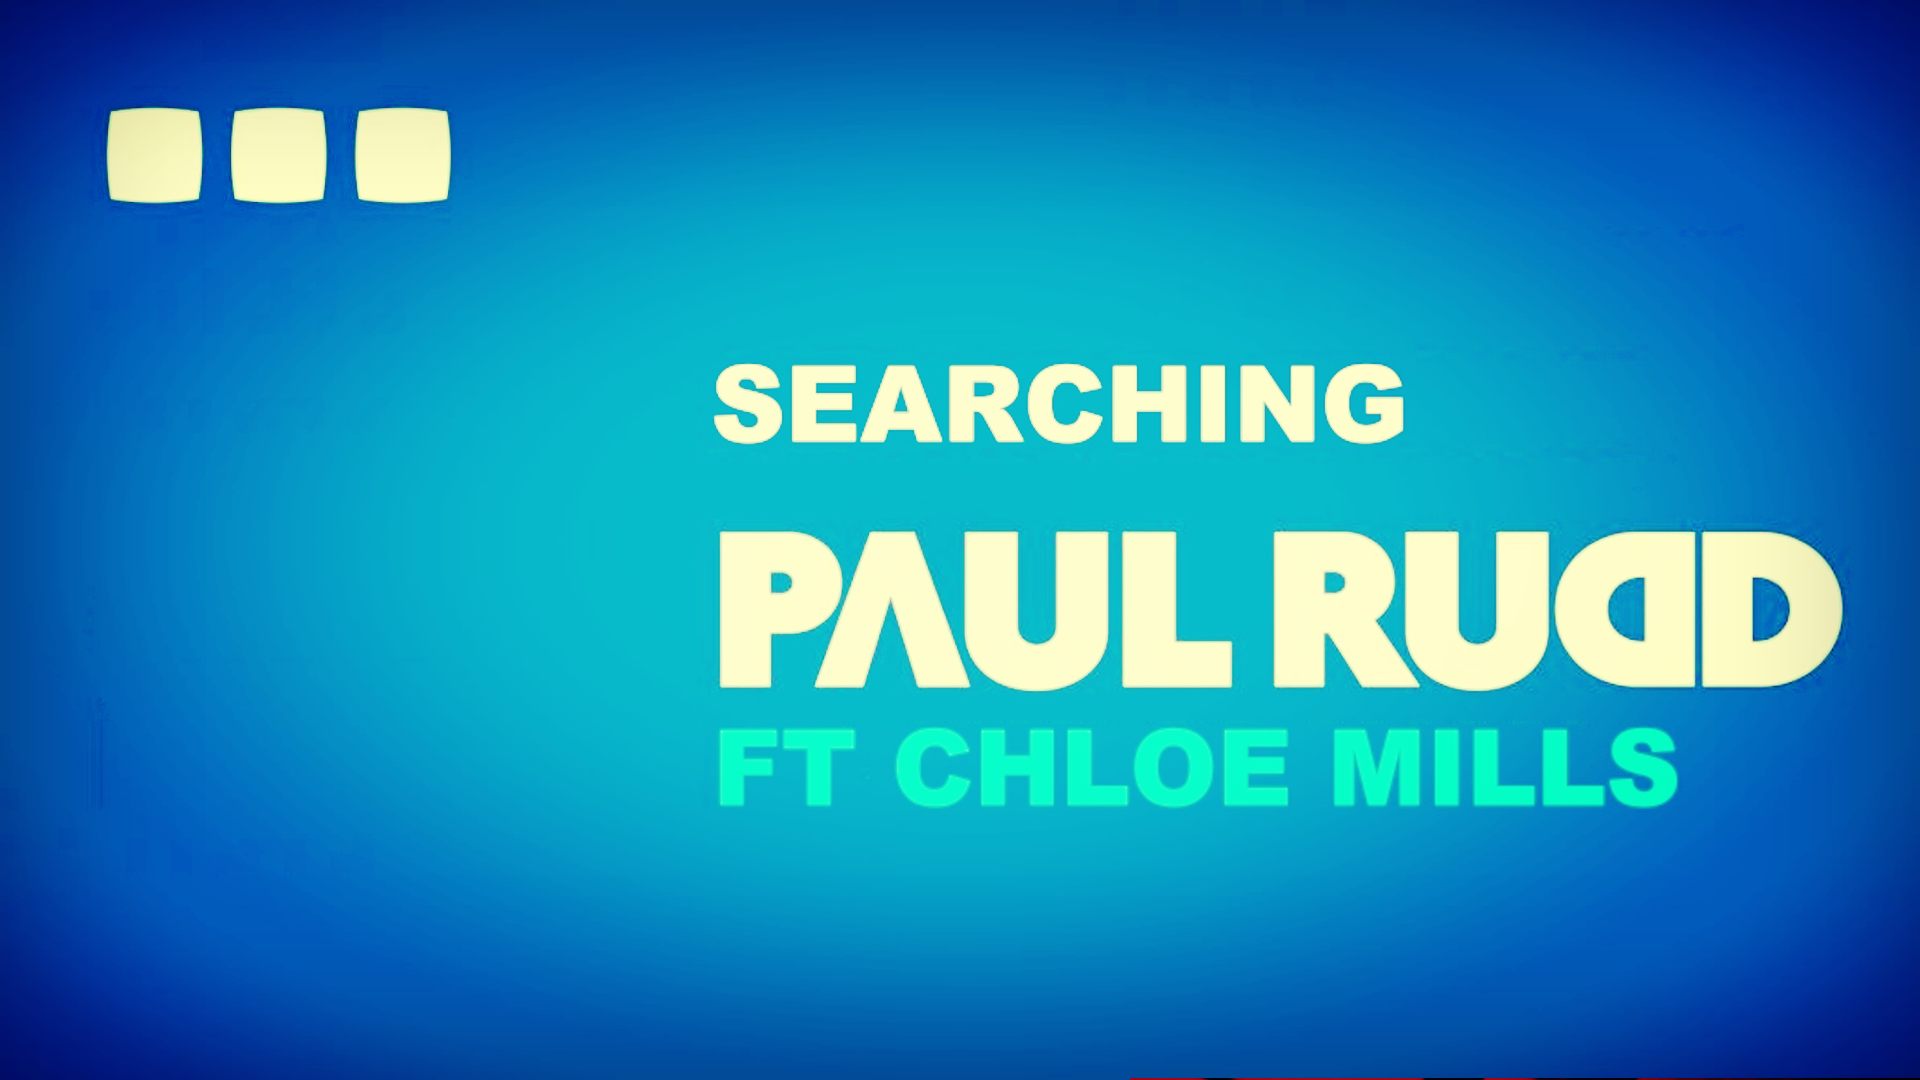 Paul Rudd Searching